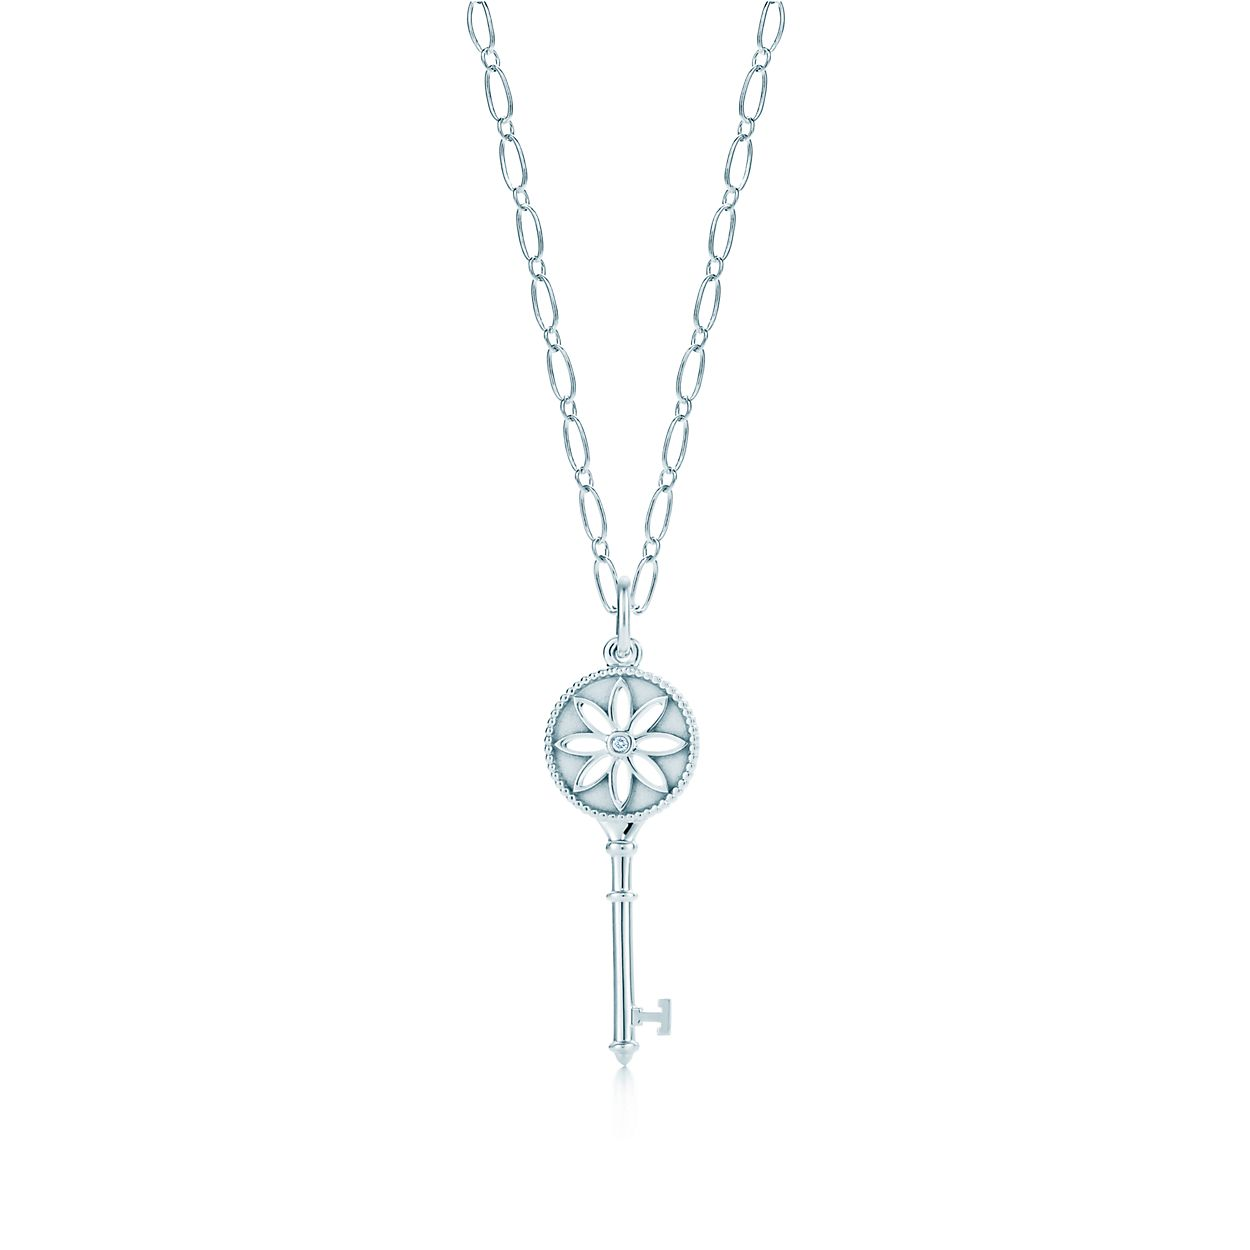 Tiffany keys daisy key pendant in silver with a diamond on an oval tiffany keysdaisy key pendant tiffany keysdaisy key pendant aloadofball Gallery